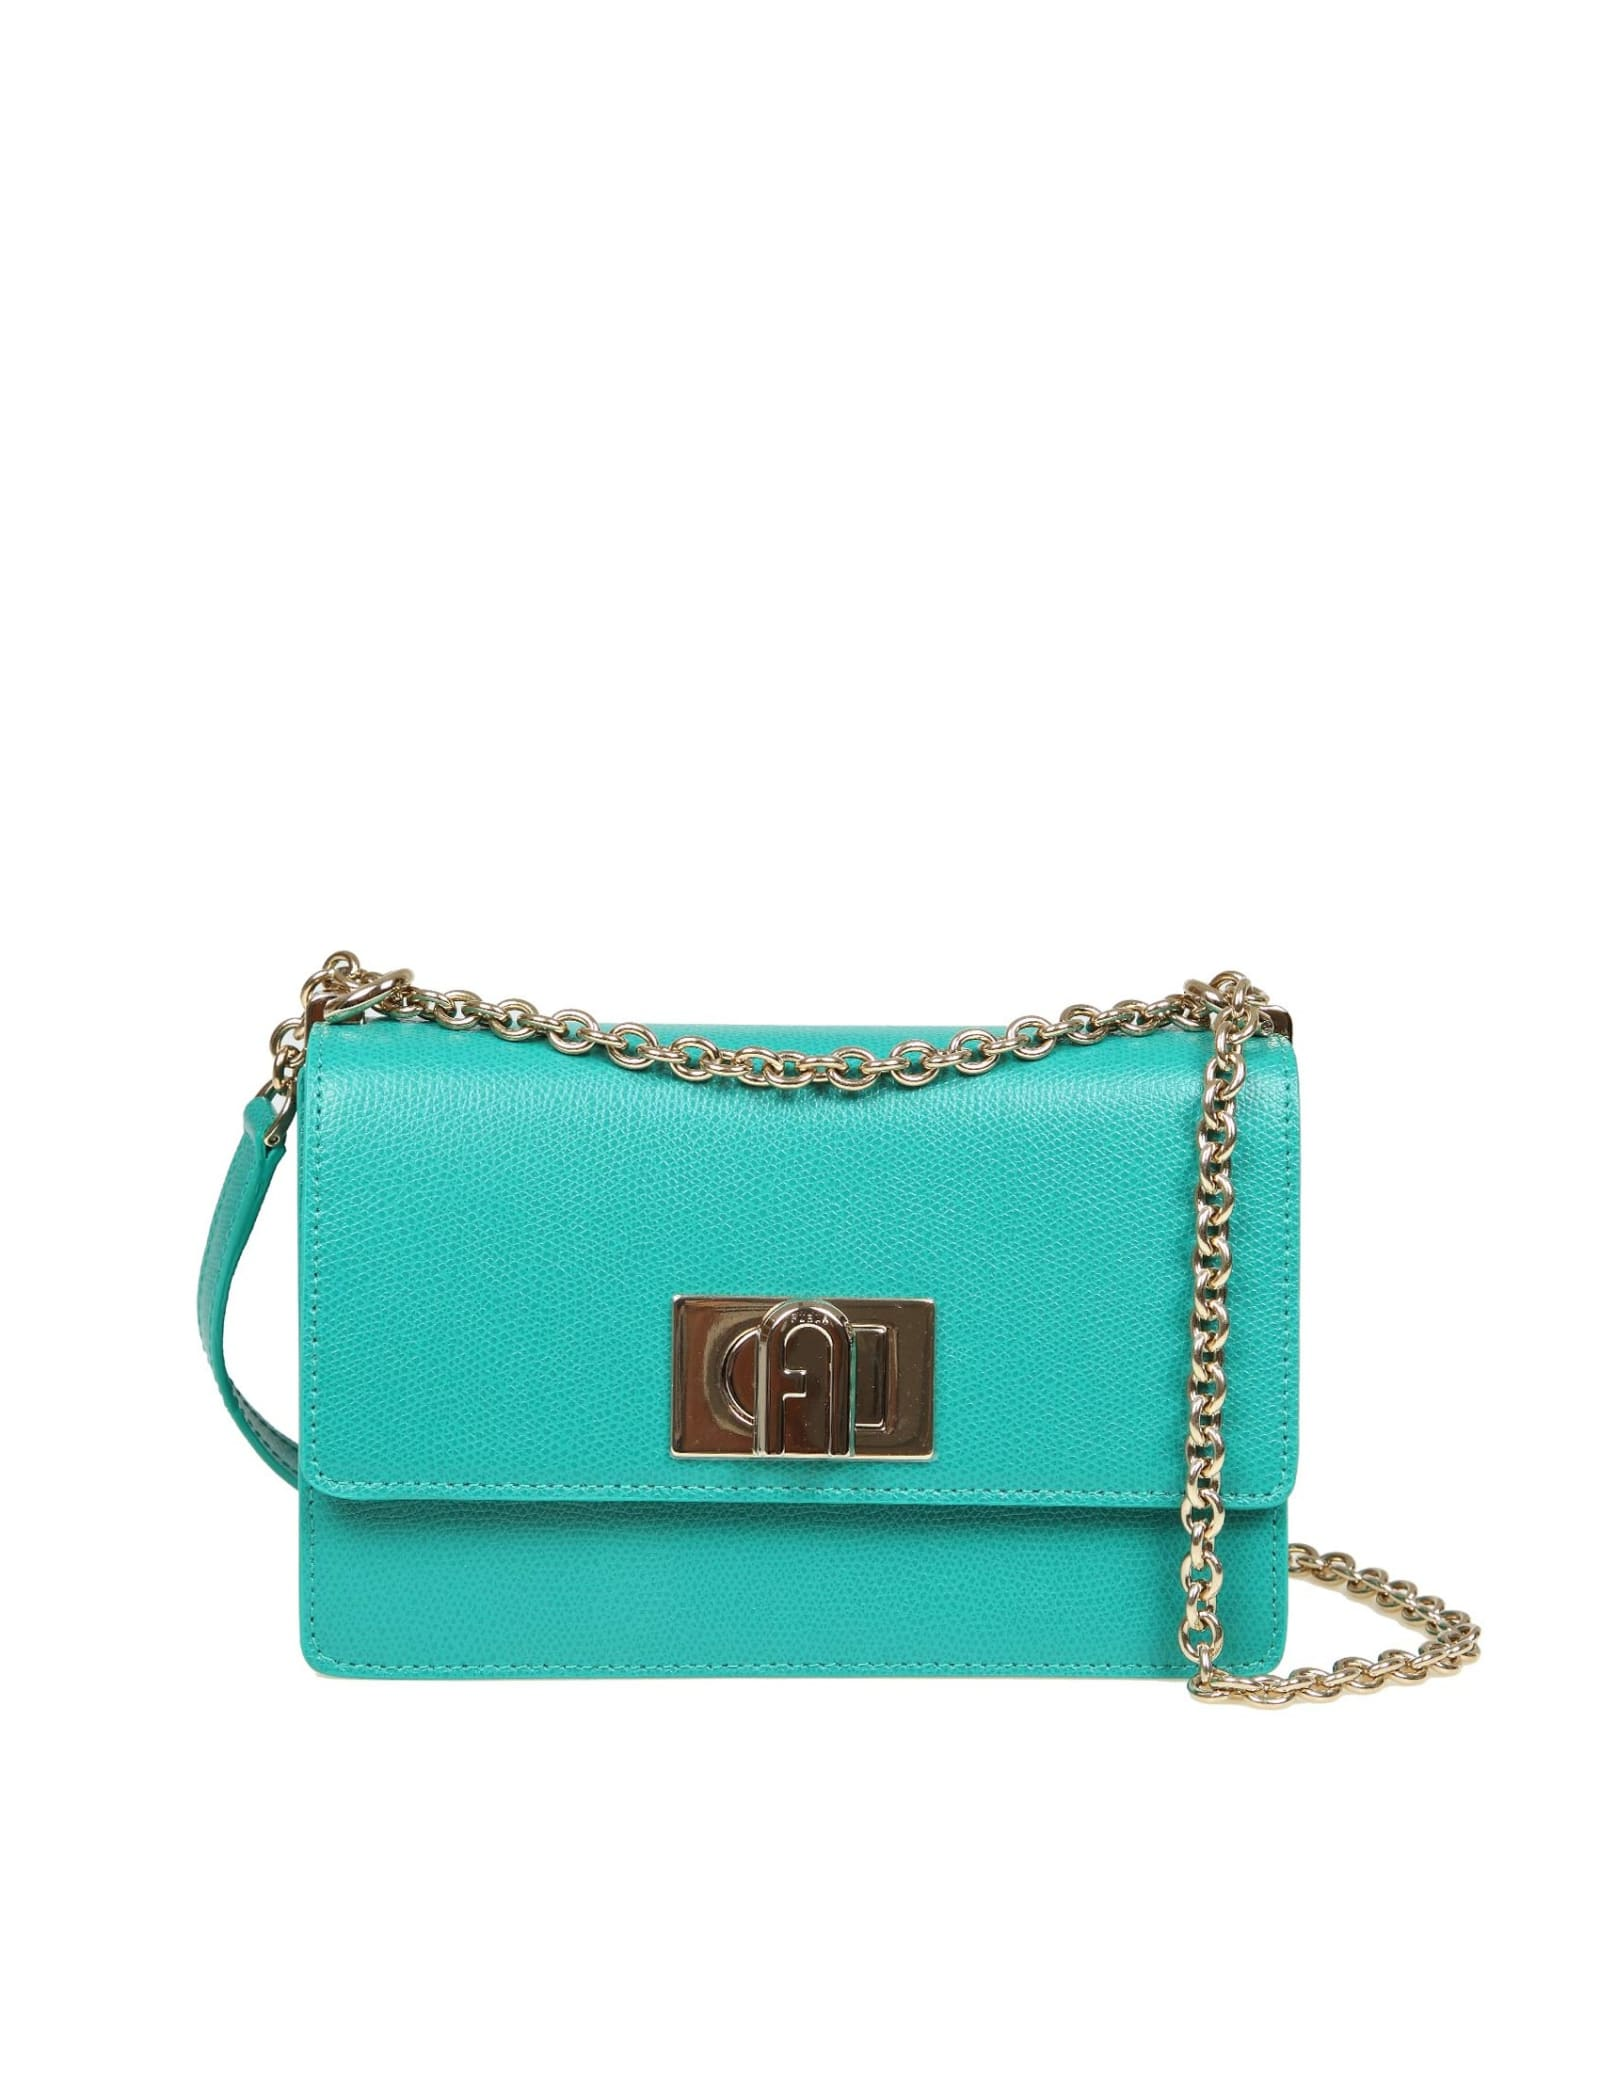 Furla 1927 Emerald Green Mini Crop Bag